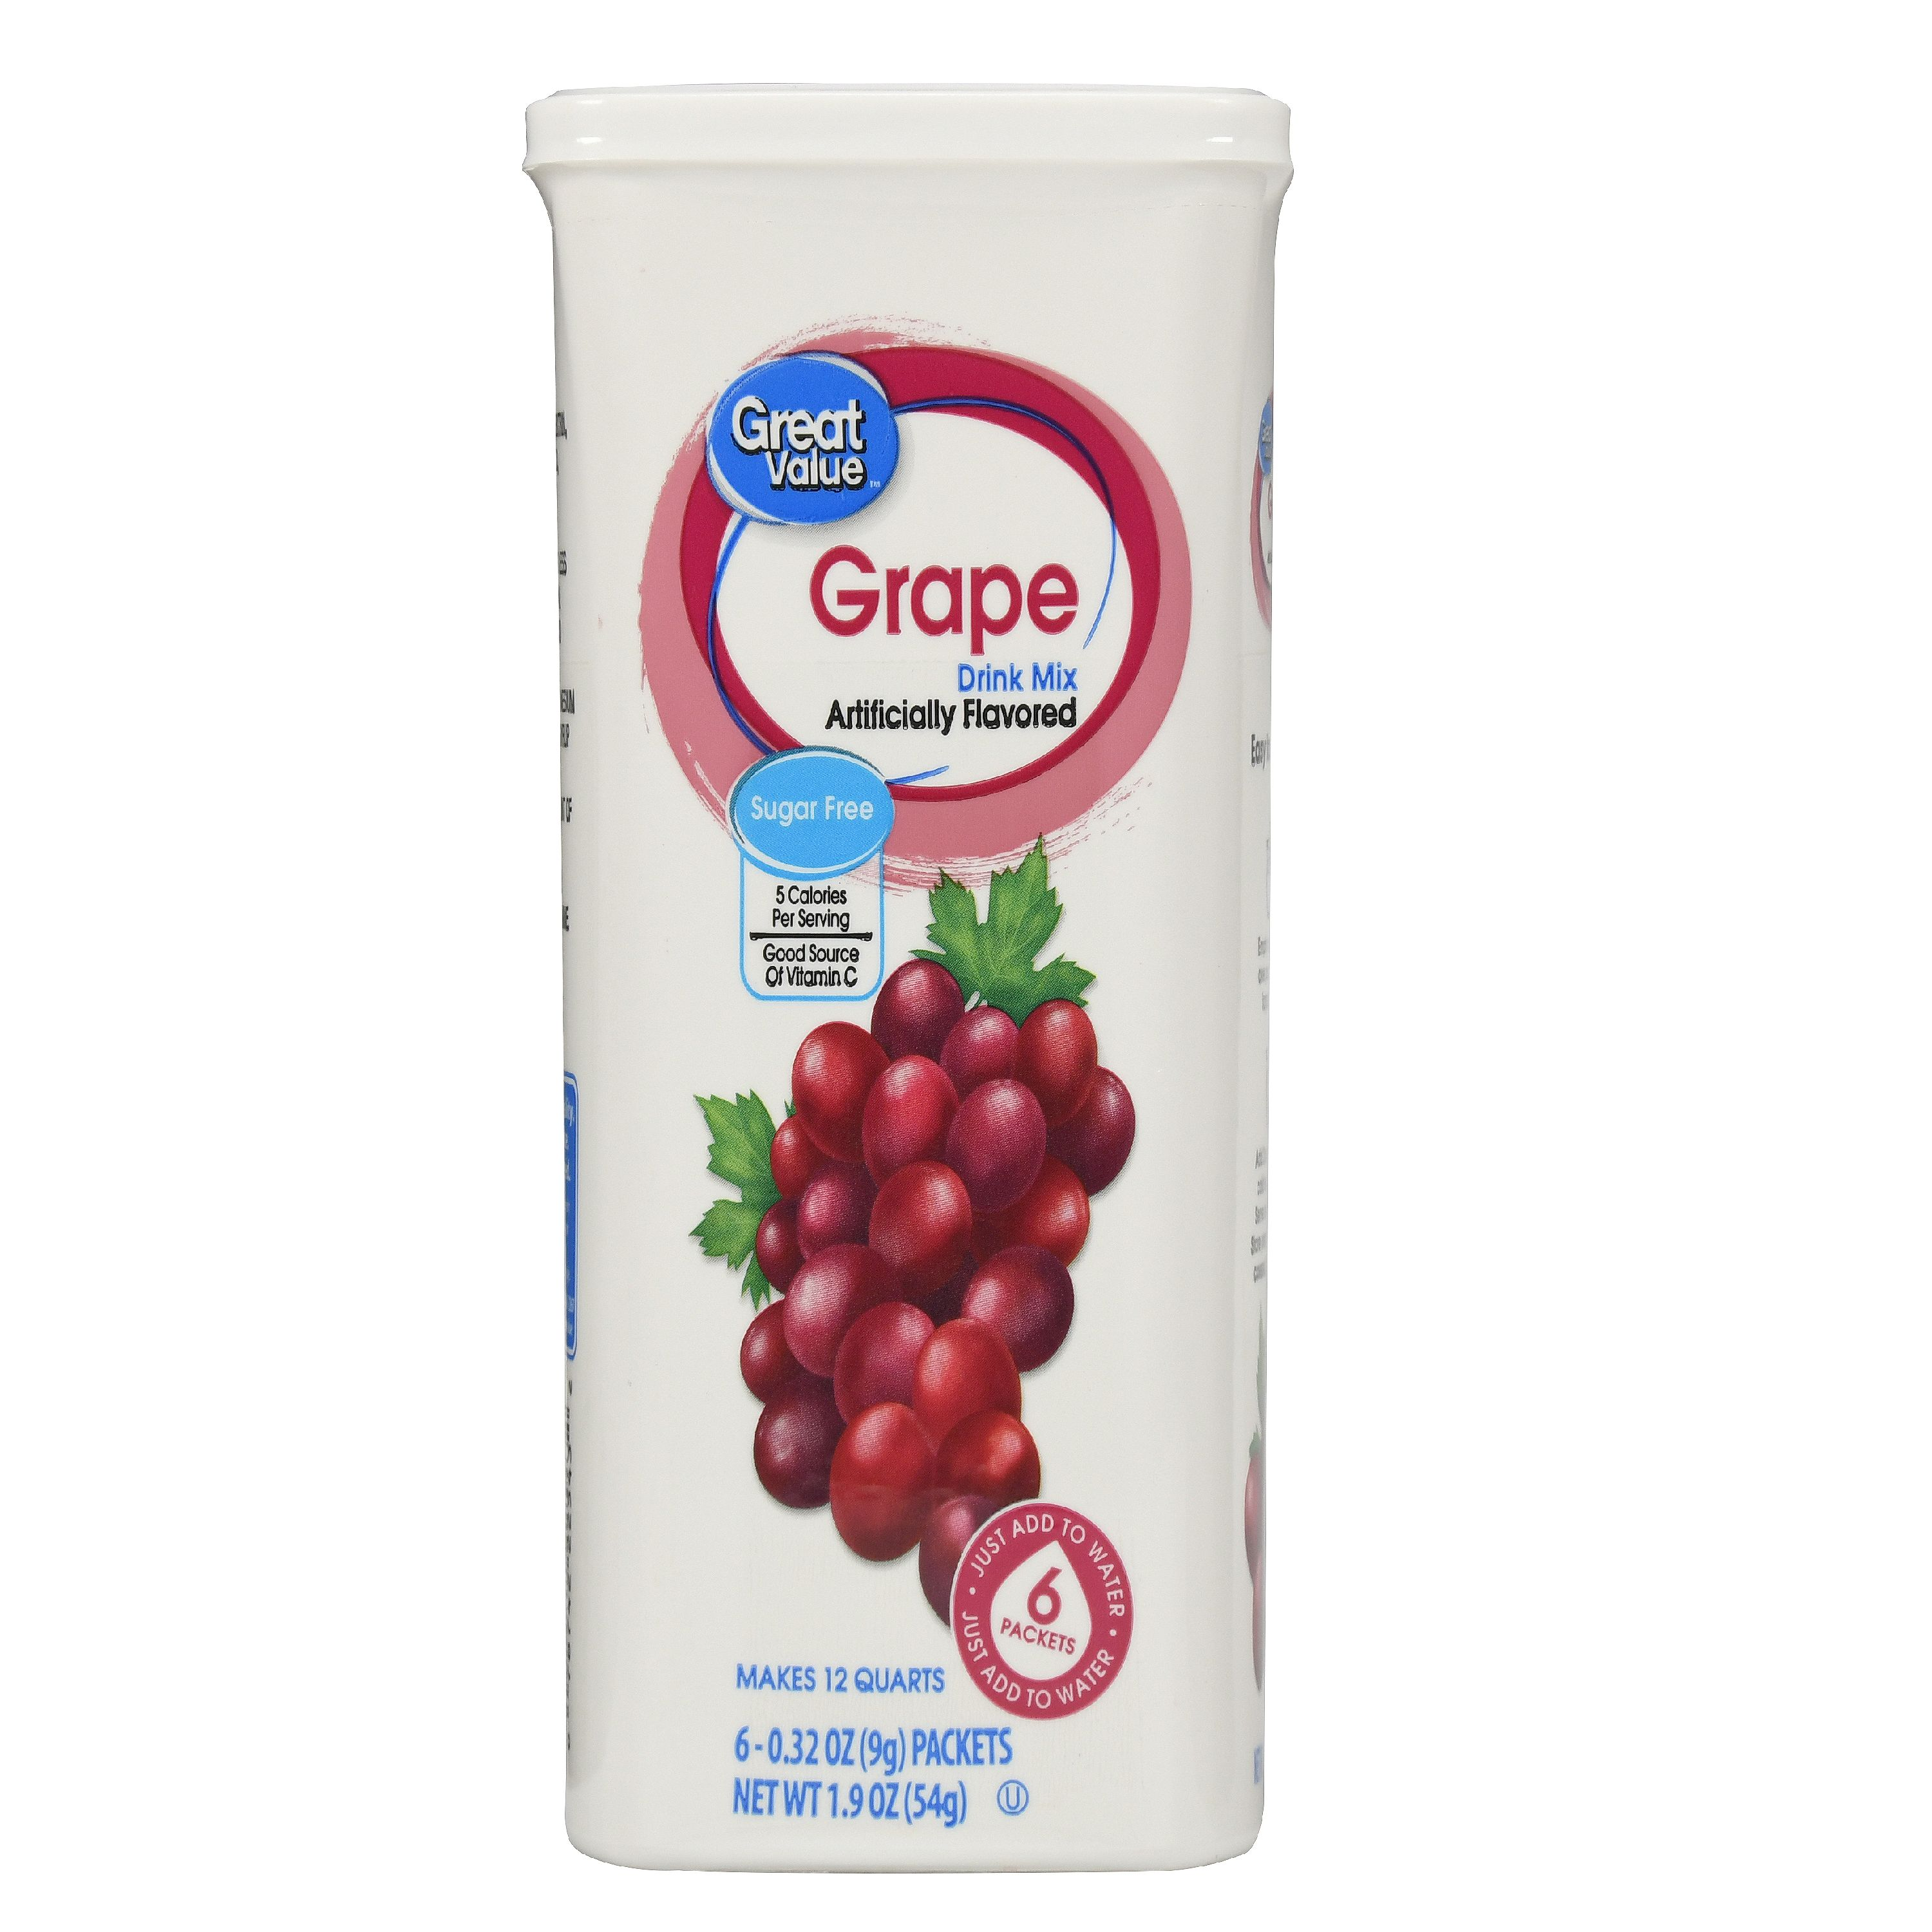 Great Value Drink Mix, Grape, Sugar-Free, 1.9 oz, 6 Count